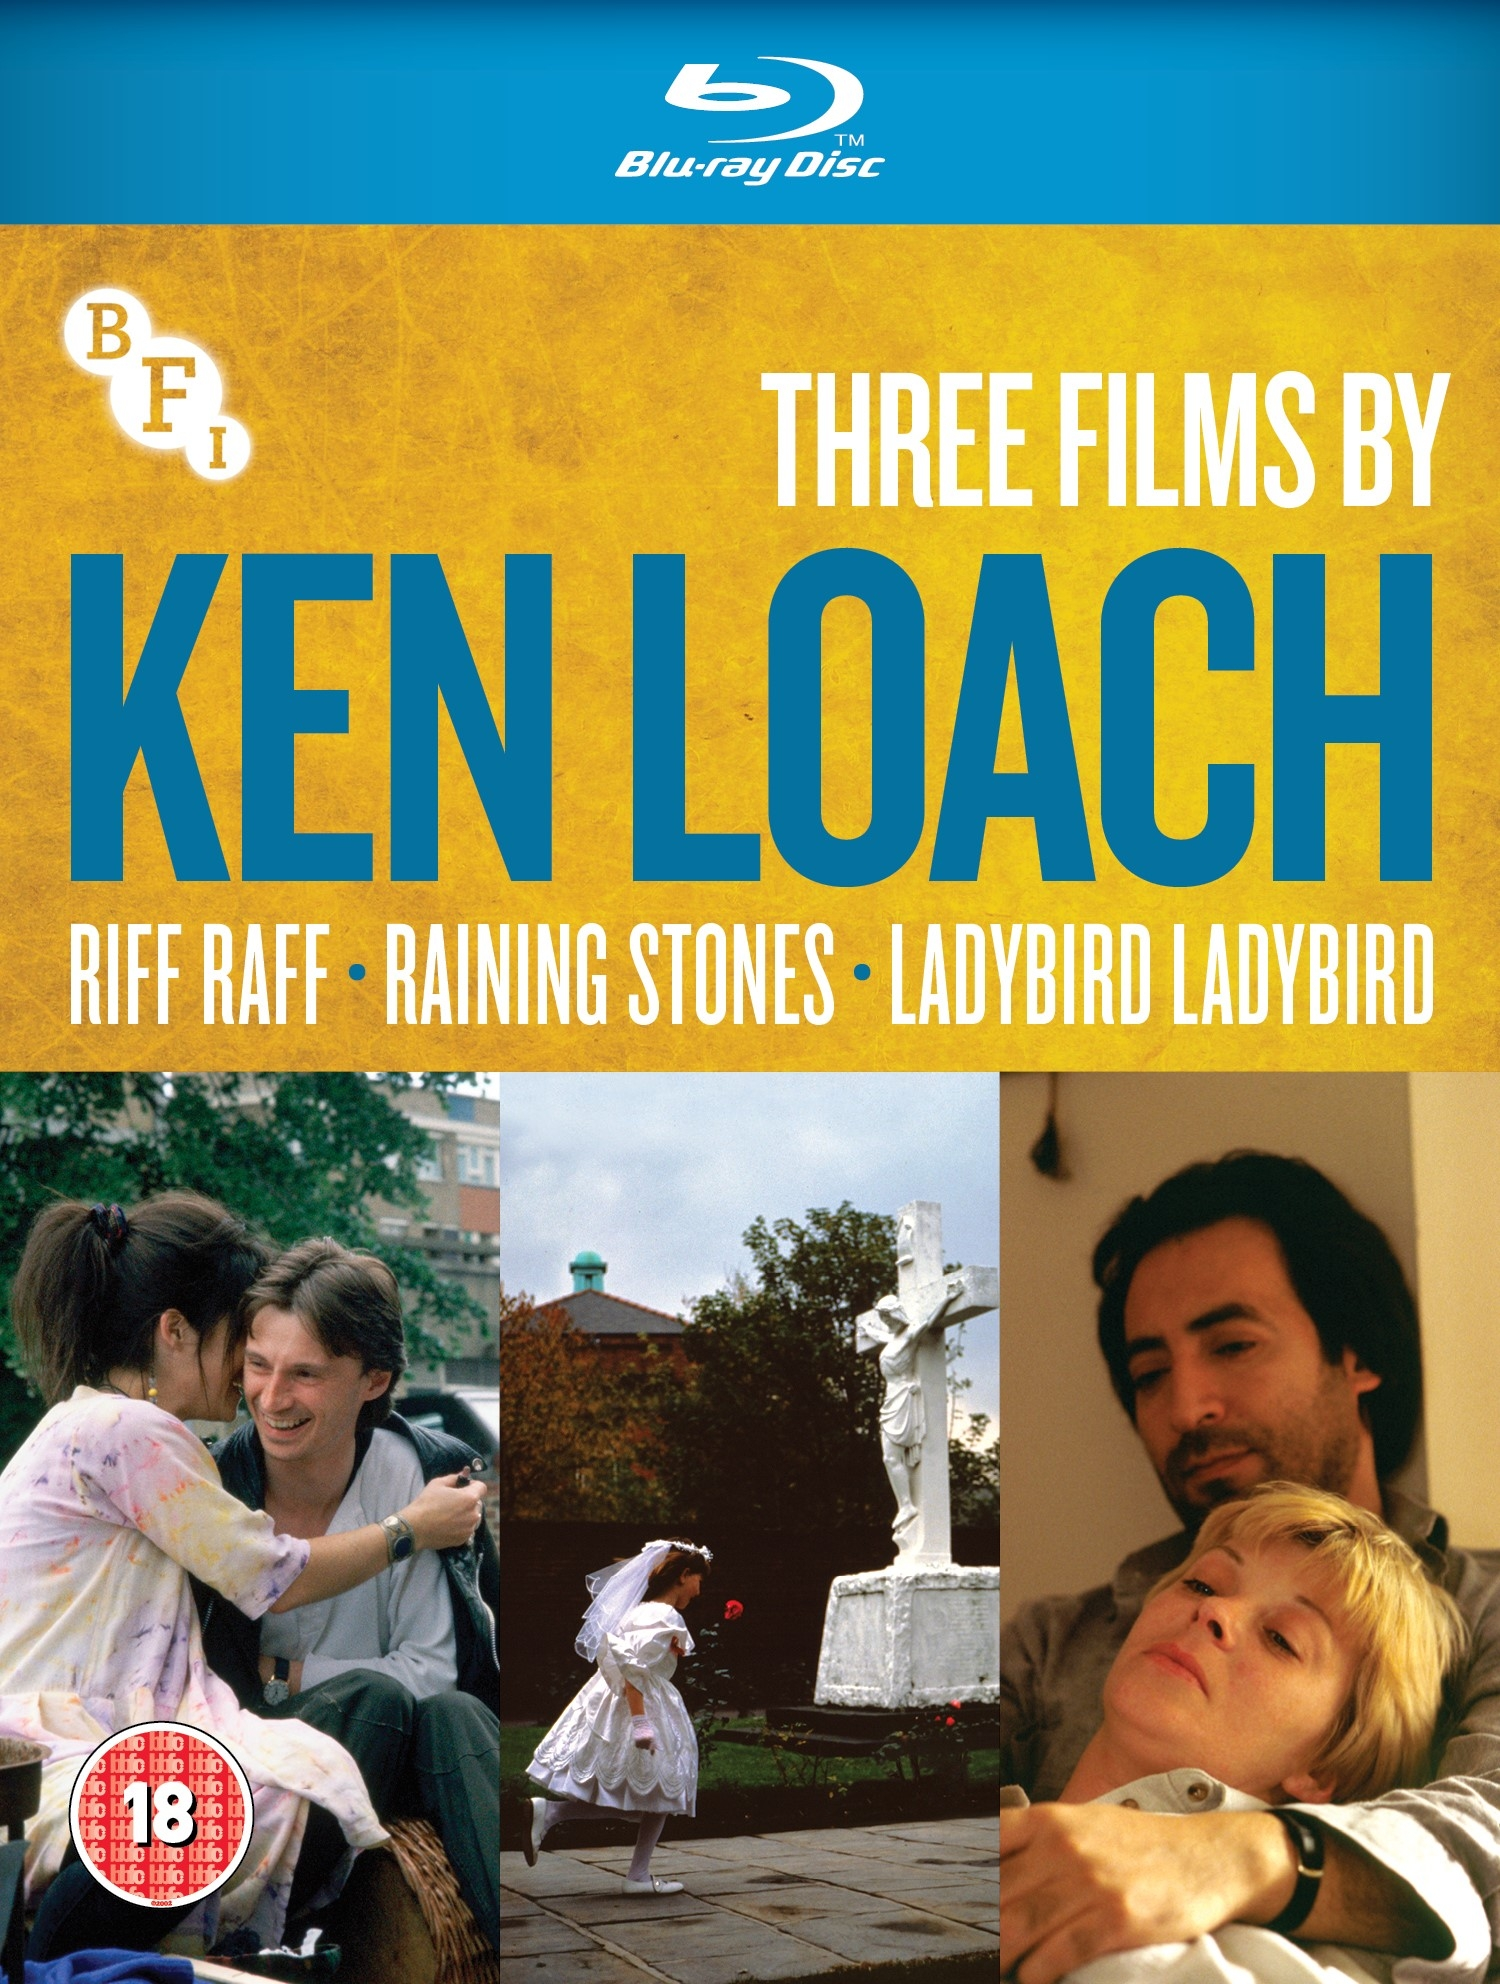 Buy Three films by Ken Loach: Riff Raff, Raining Stones, Ladybird Ladybird (Blu-ray)